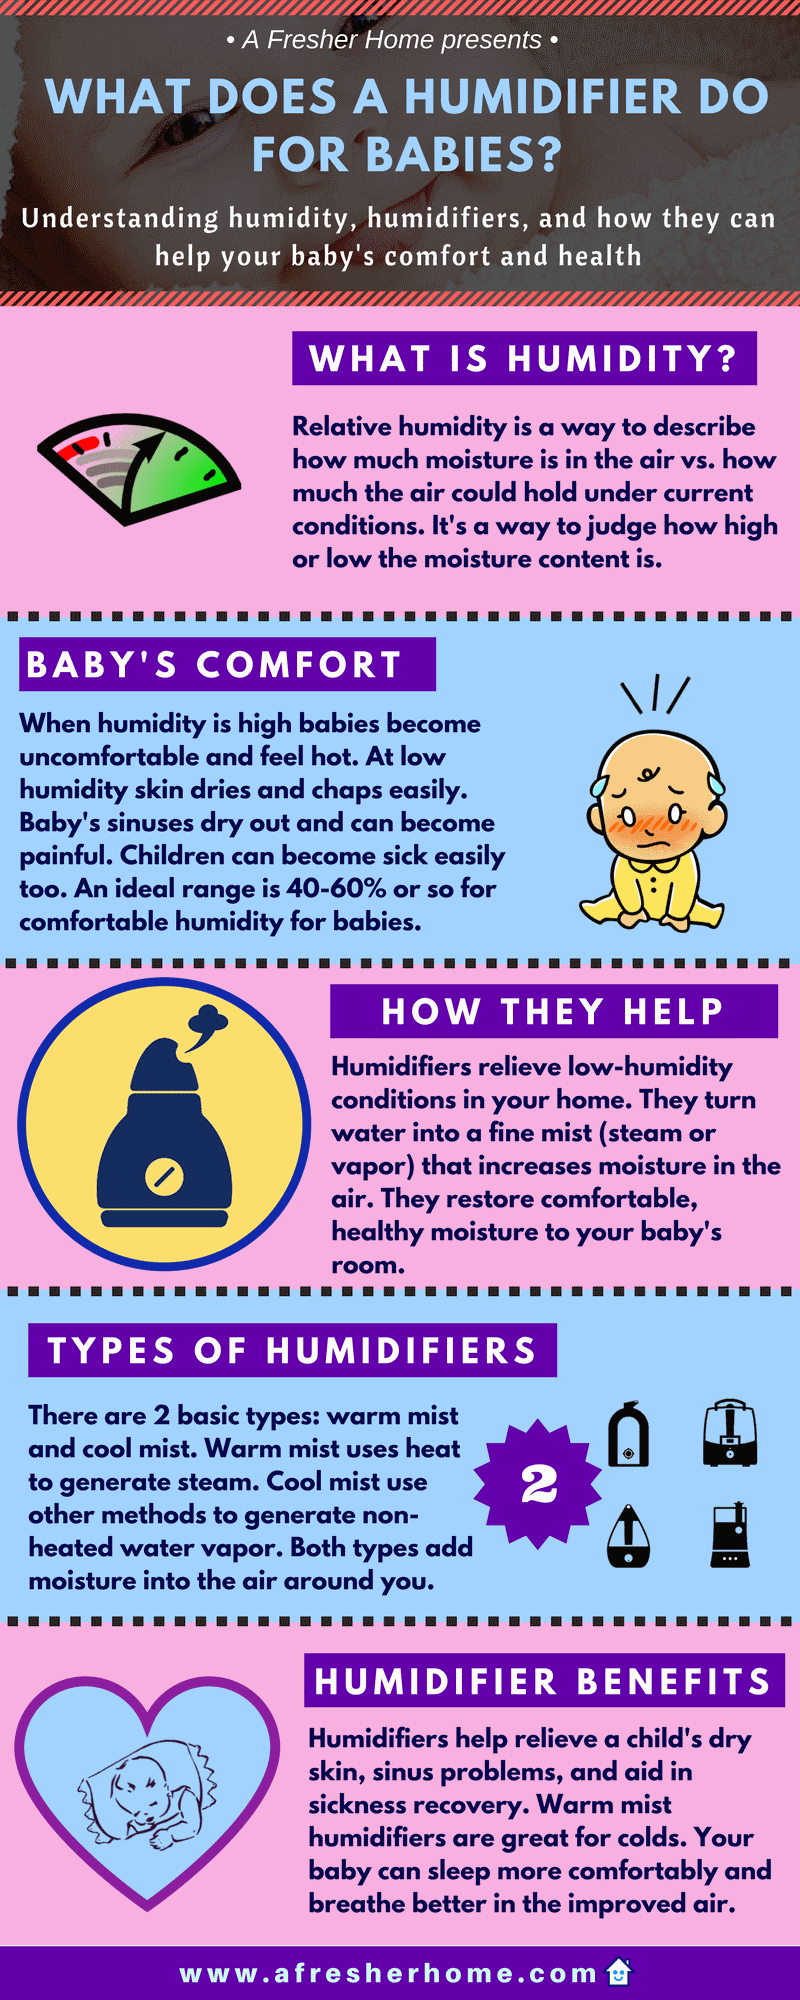 What does a humidifier do for babies infographic image